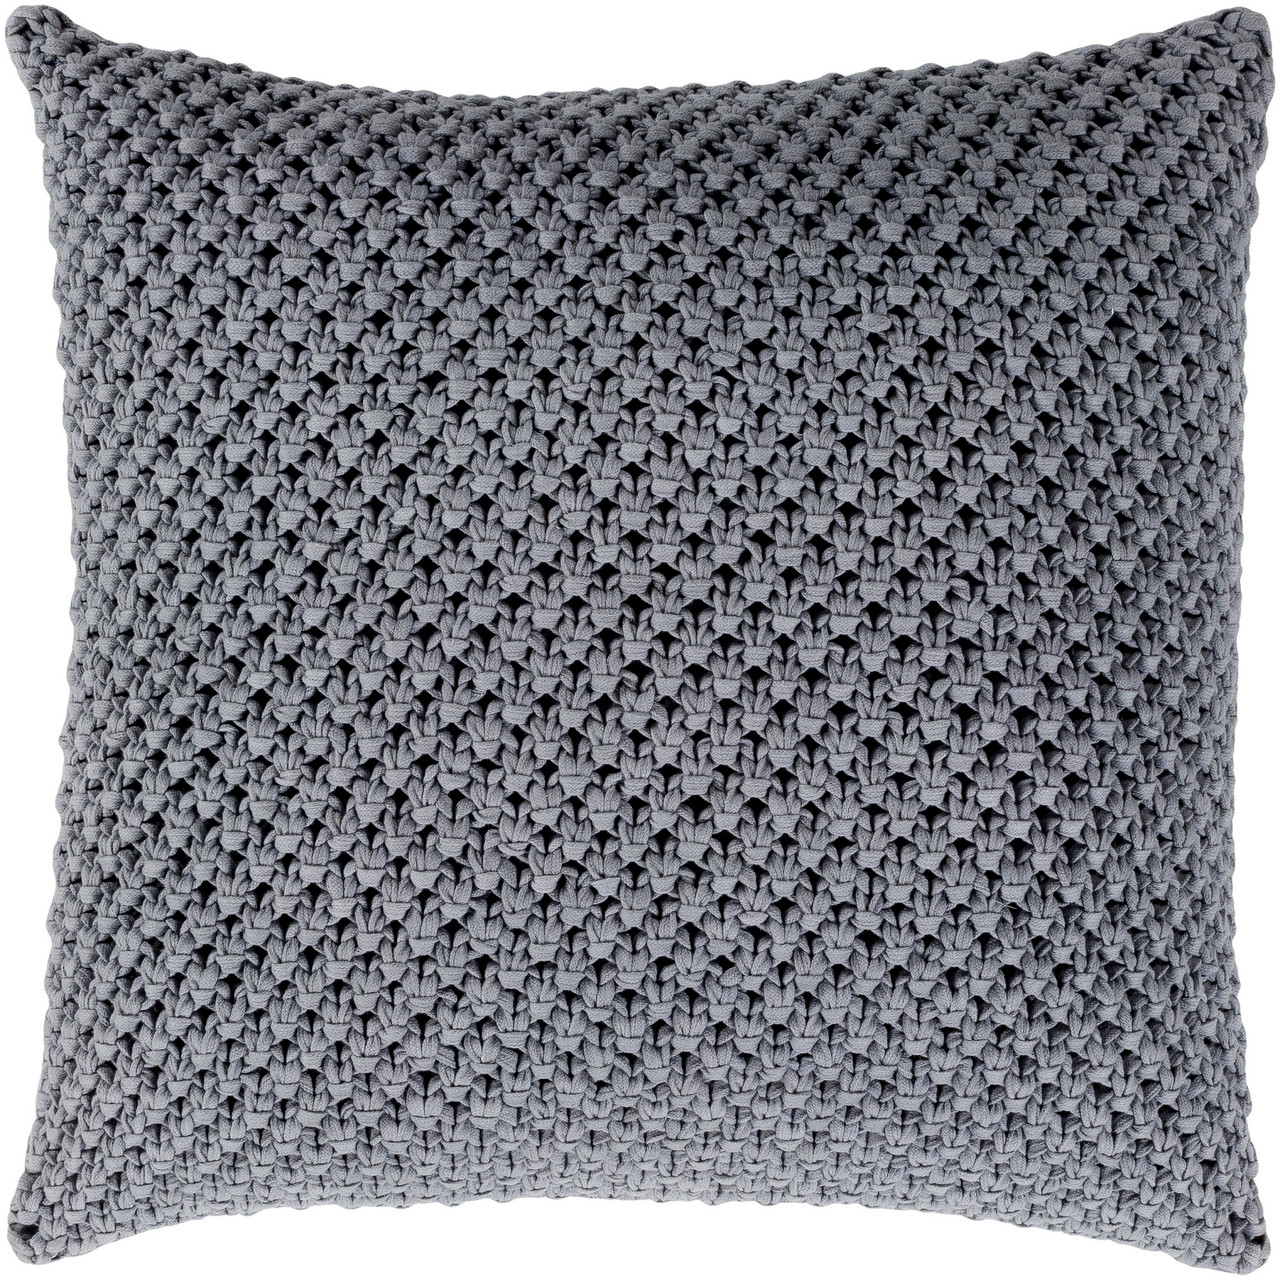 18 Coin Gray Crochet Patterned Square Throw Pillow Cover Christmas Central